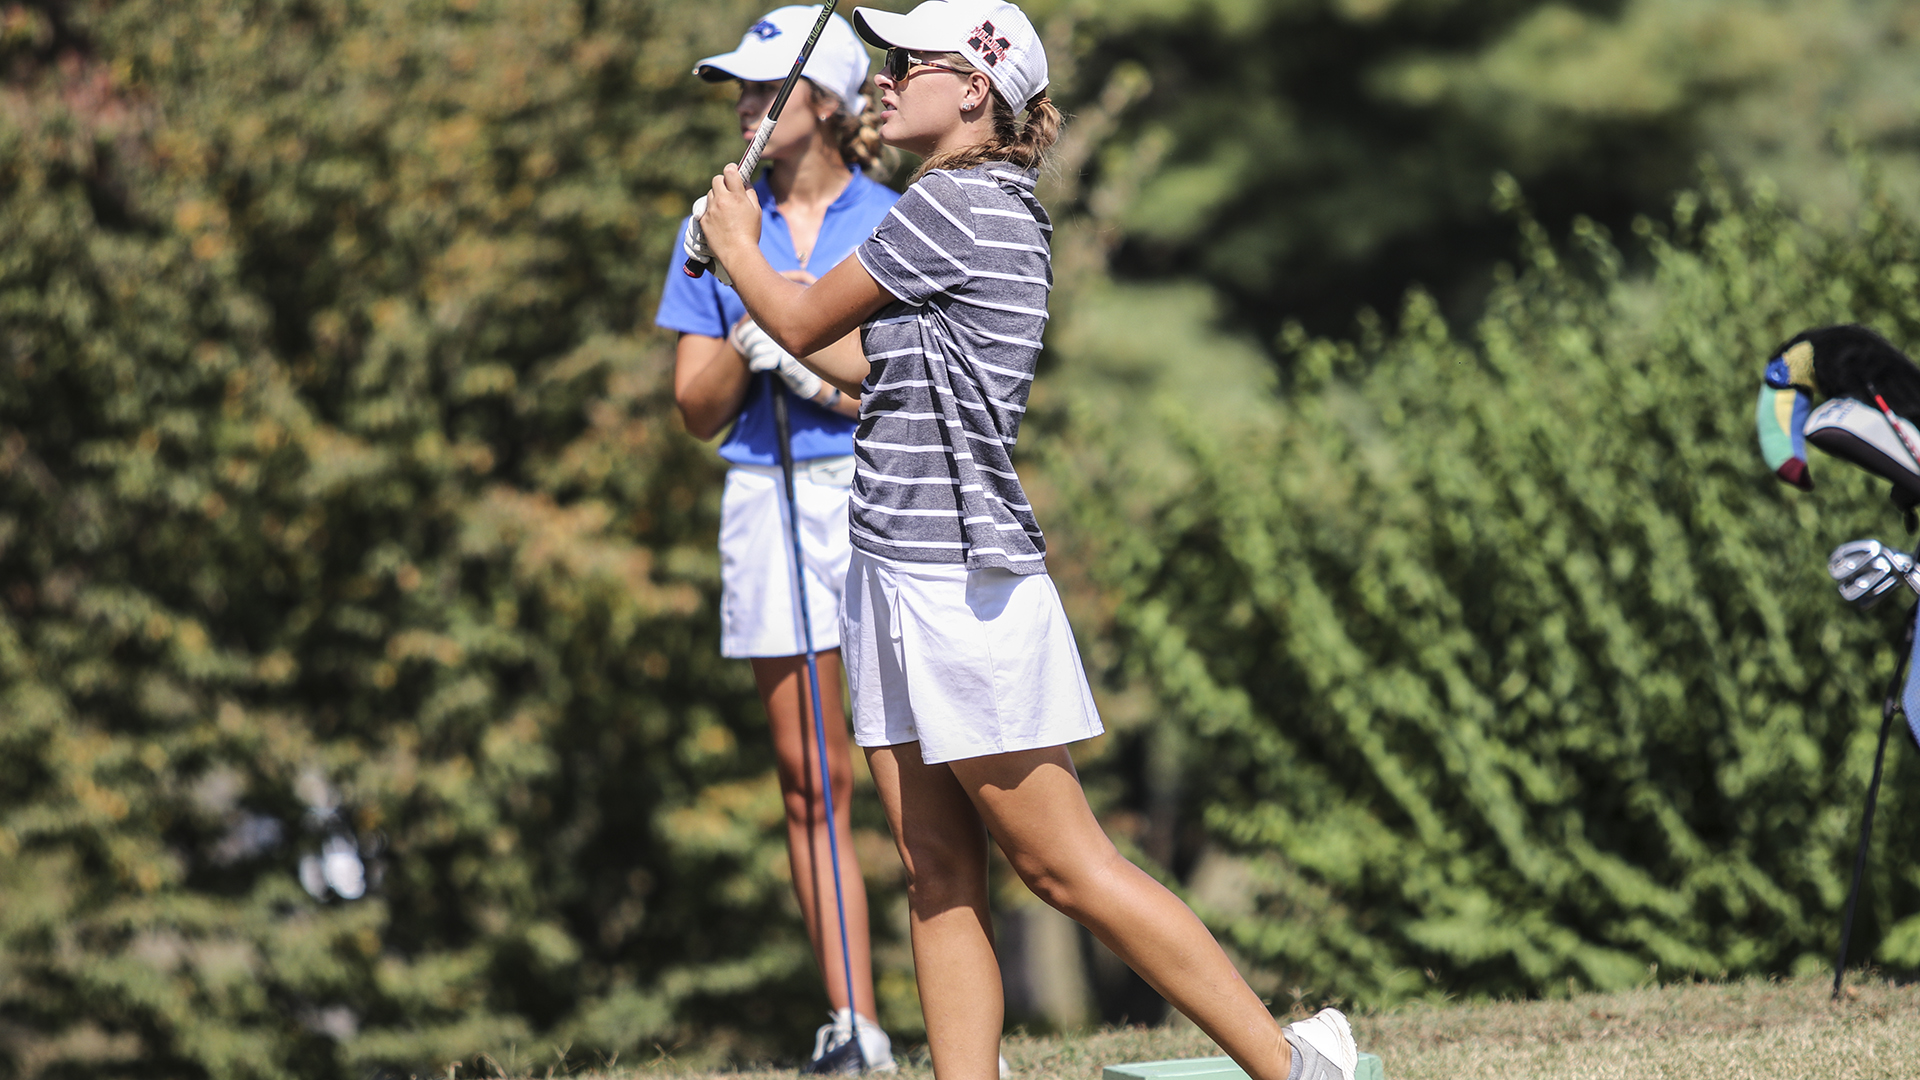 Women's golf jumps to No. 16 in national poll